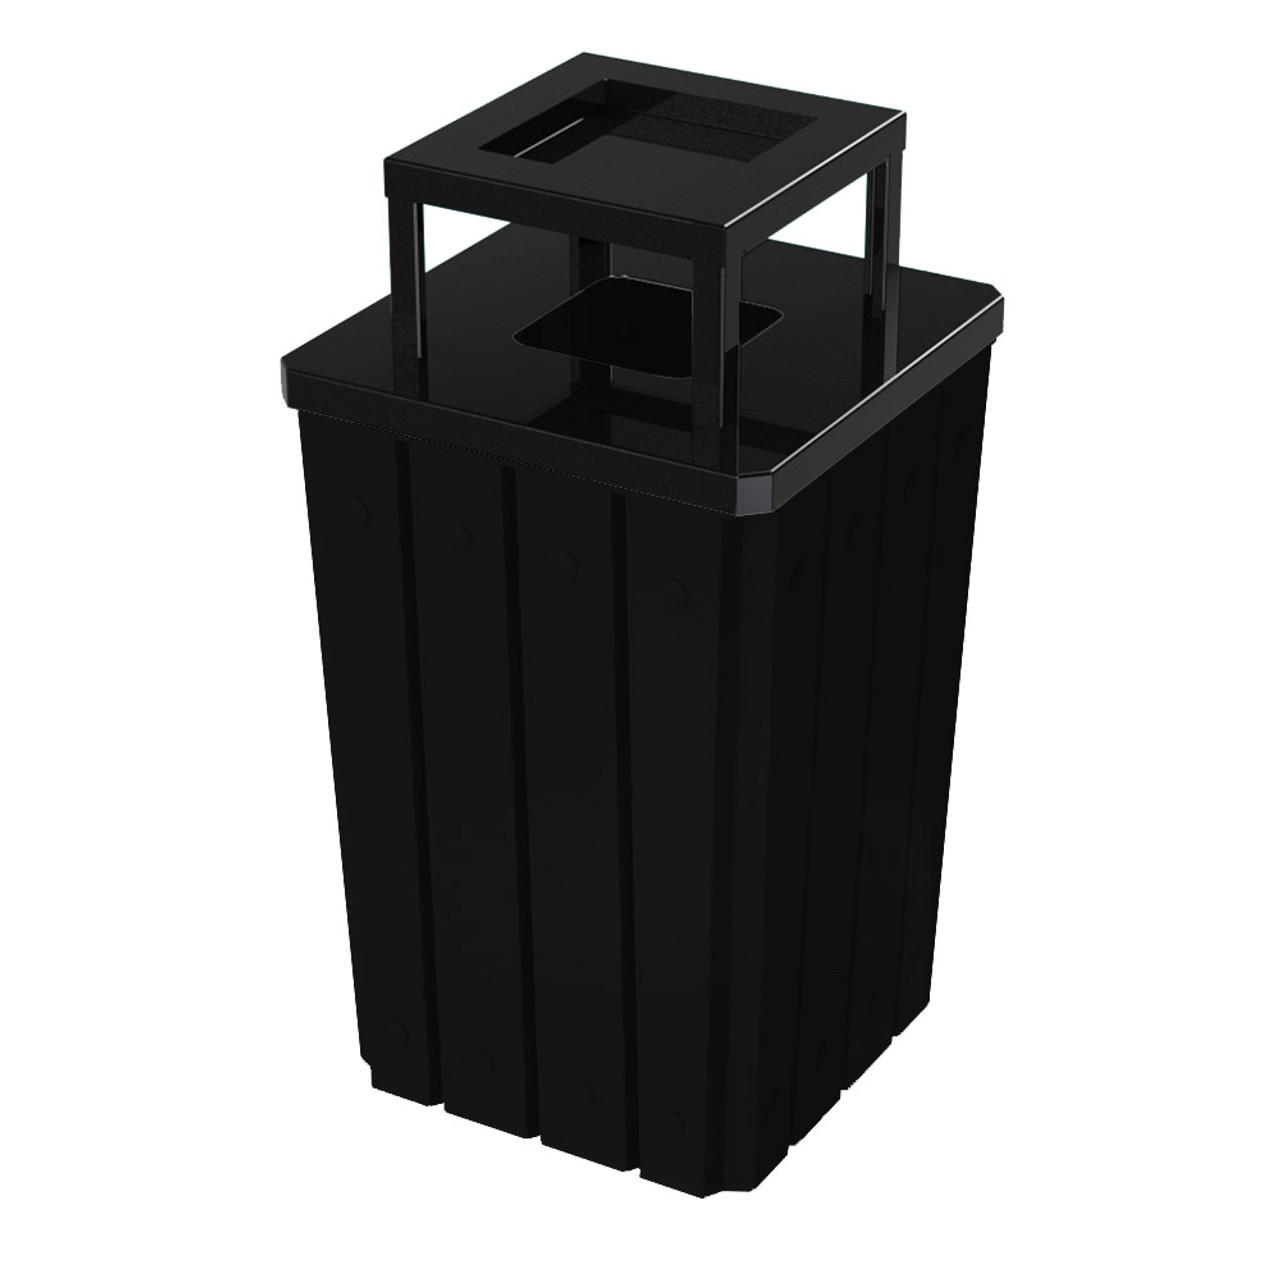 32 Gallon Heavy Duty Black Ash Trash Can with Liner S8295S-00-092